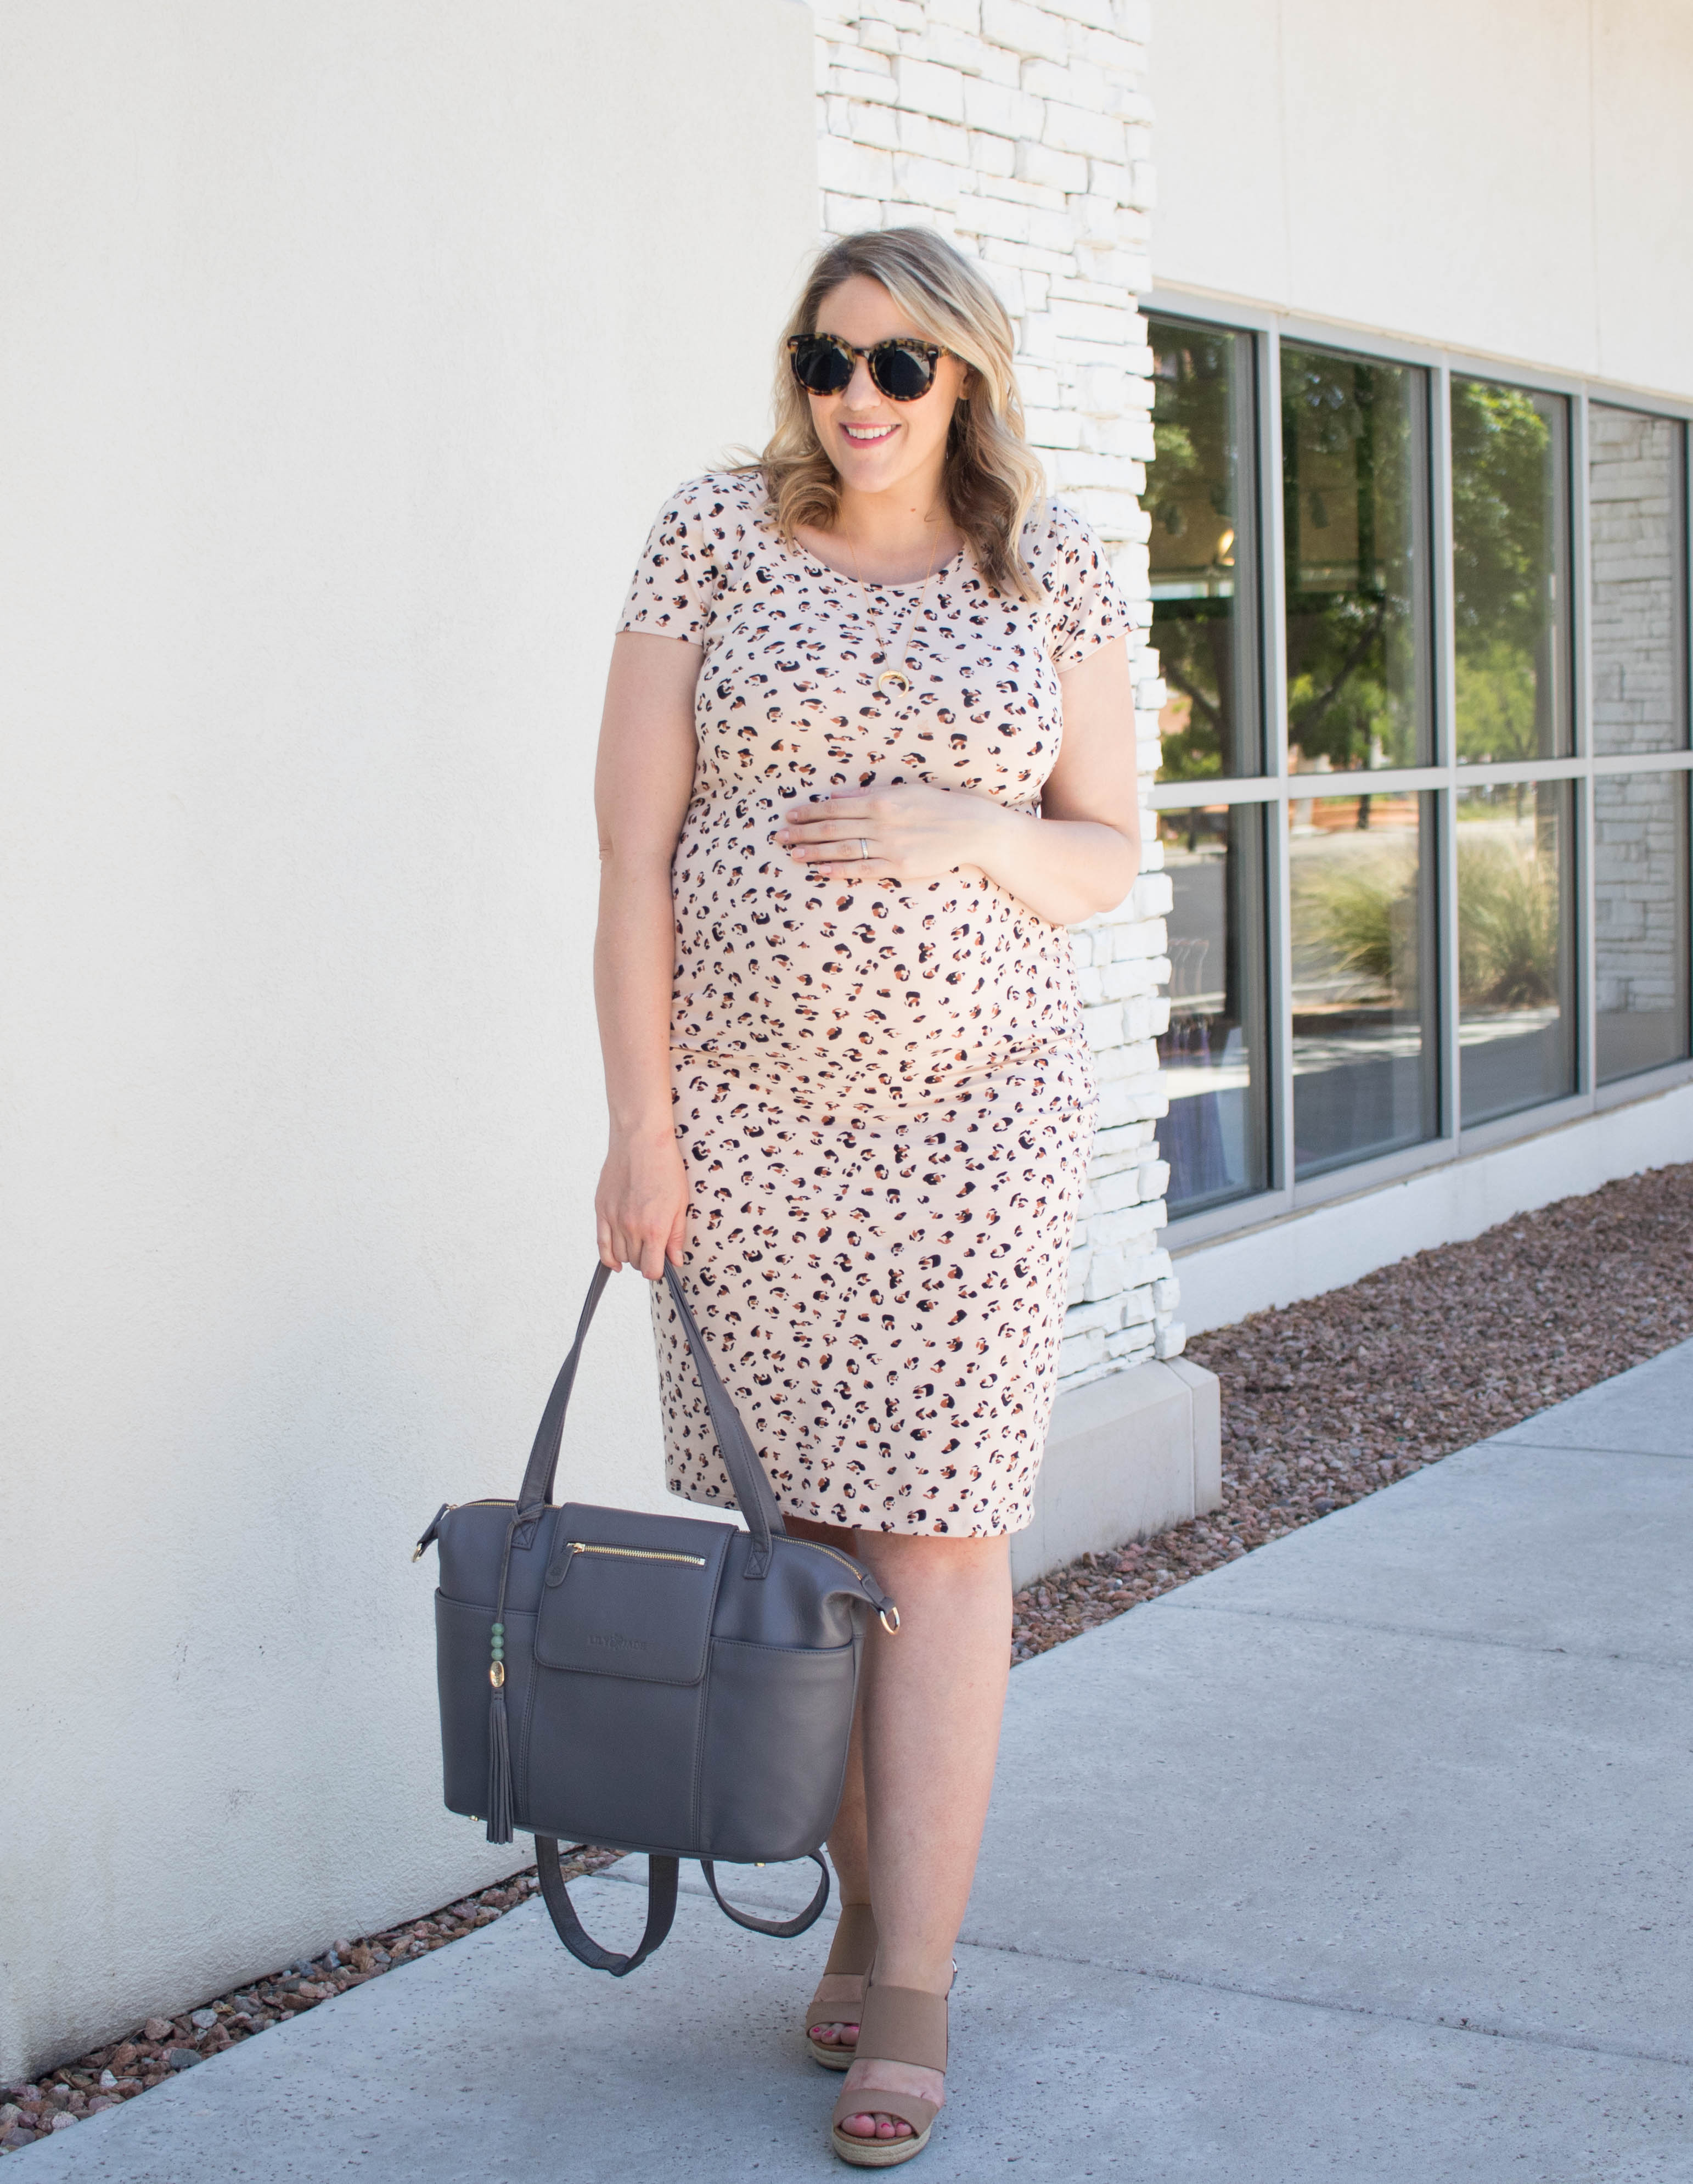 leopard print maternity dress target style #targetstyle #maternitystyle #pregnancy